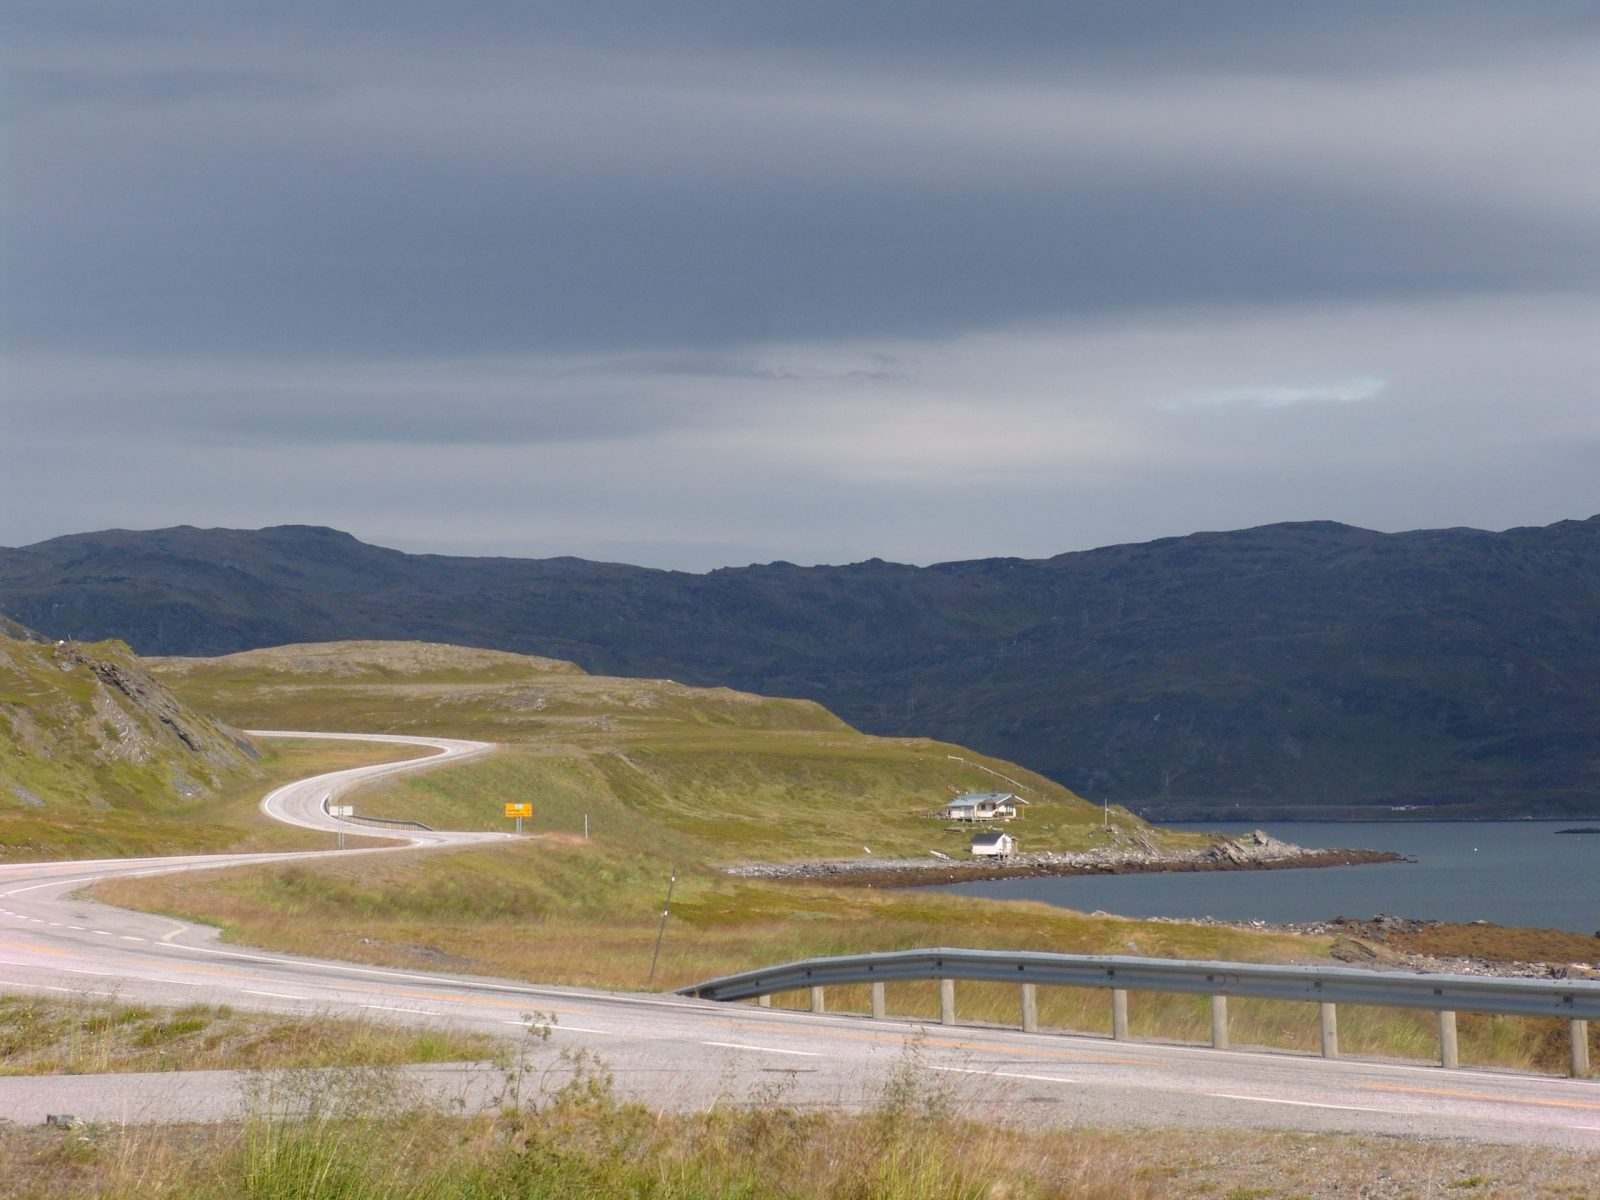 Travel to North Cape. The views from the windows